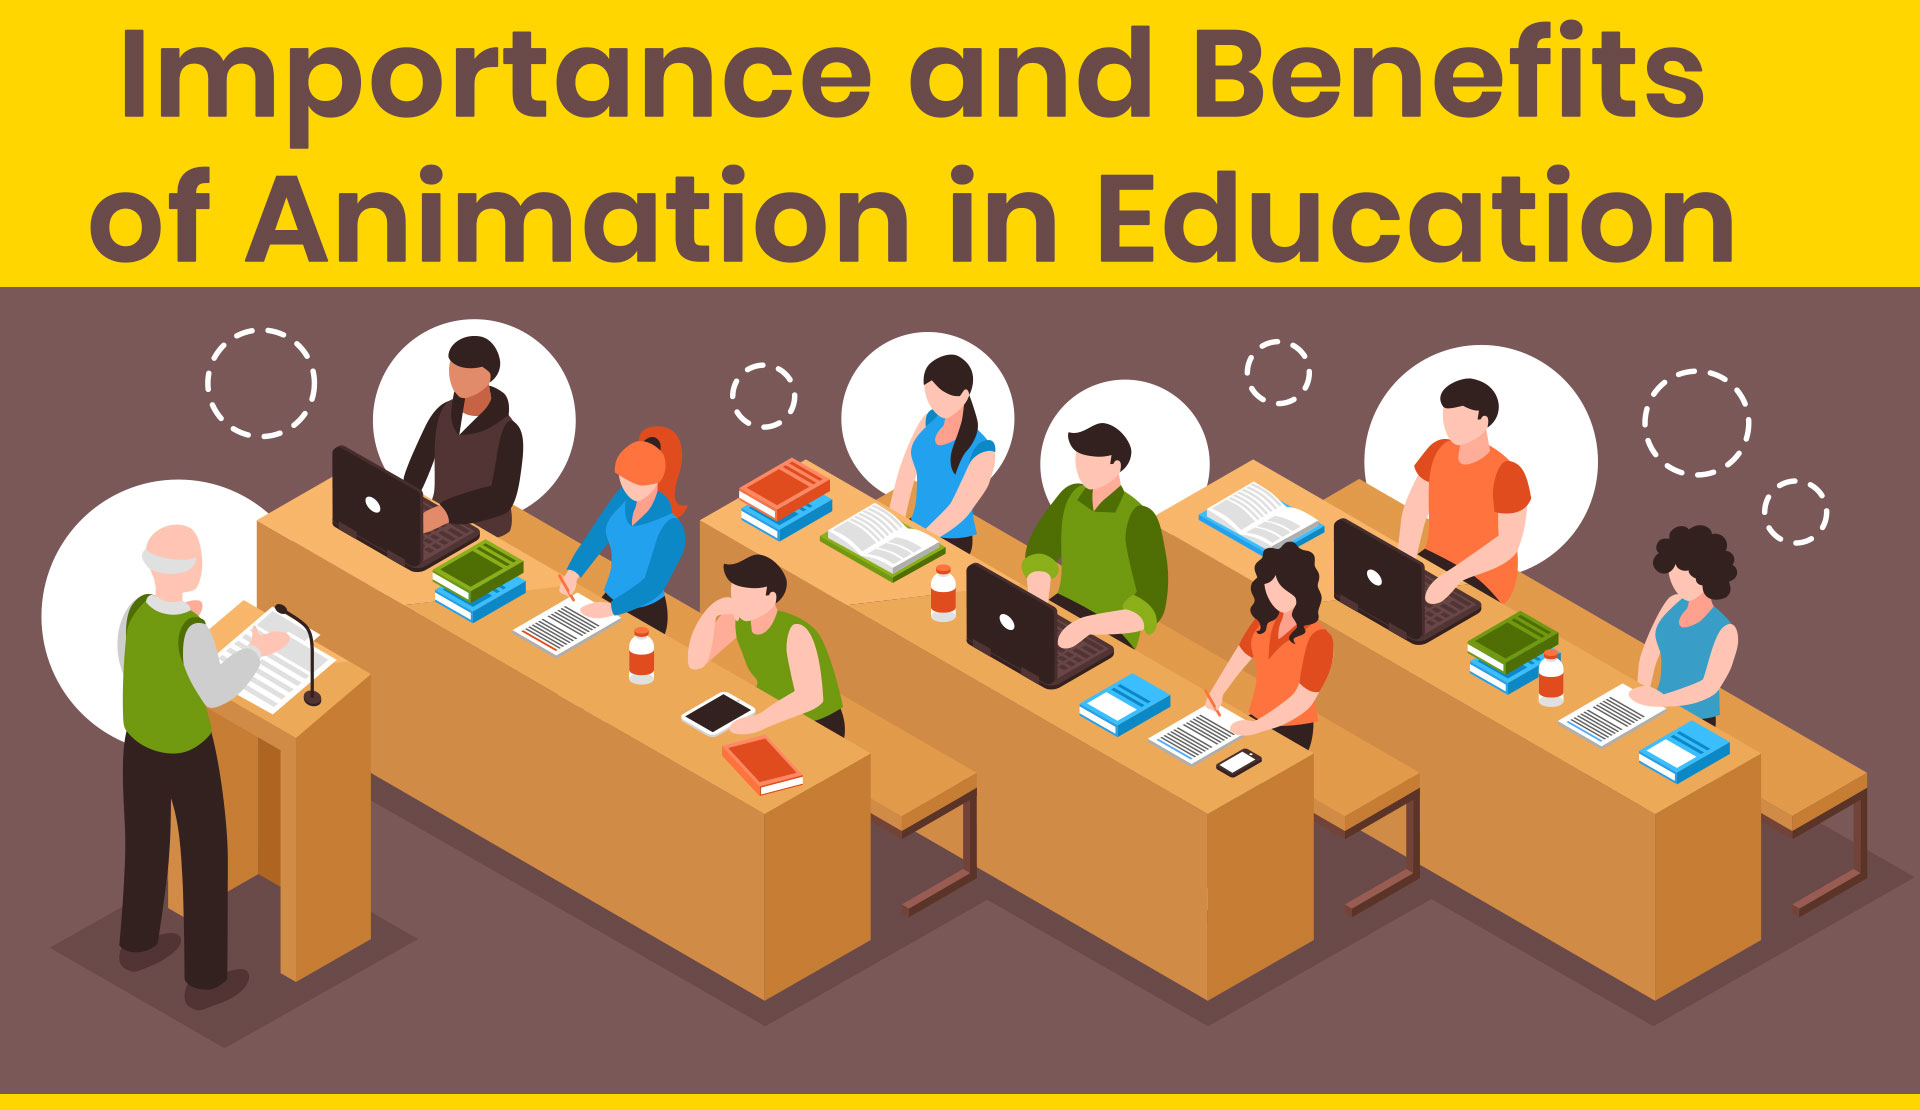 Importance and Benefits of Animation in Education